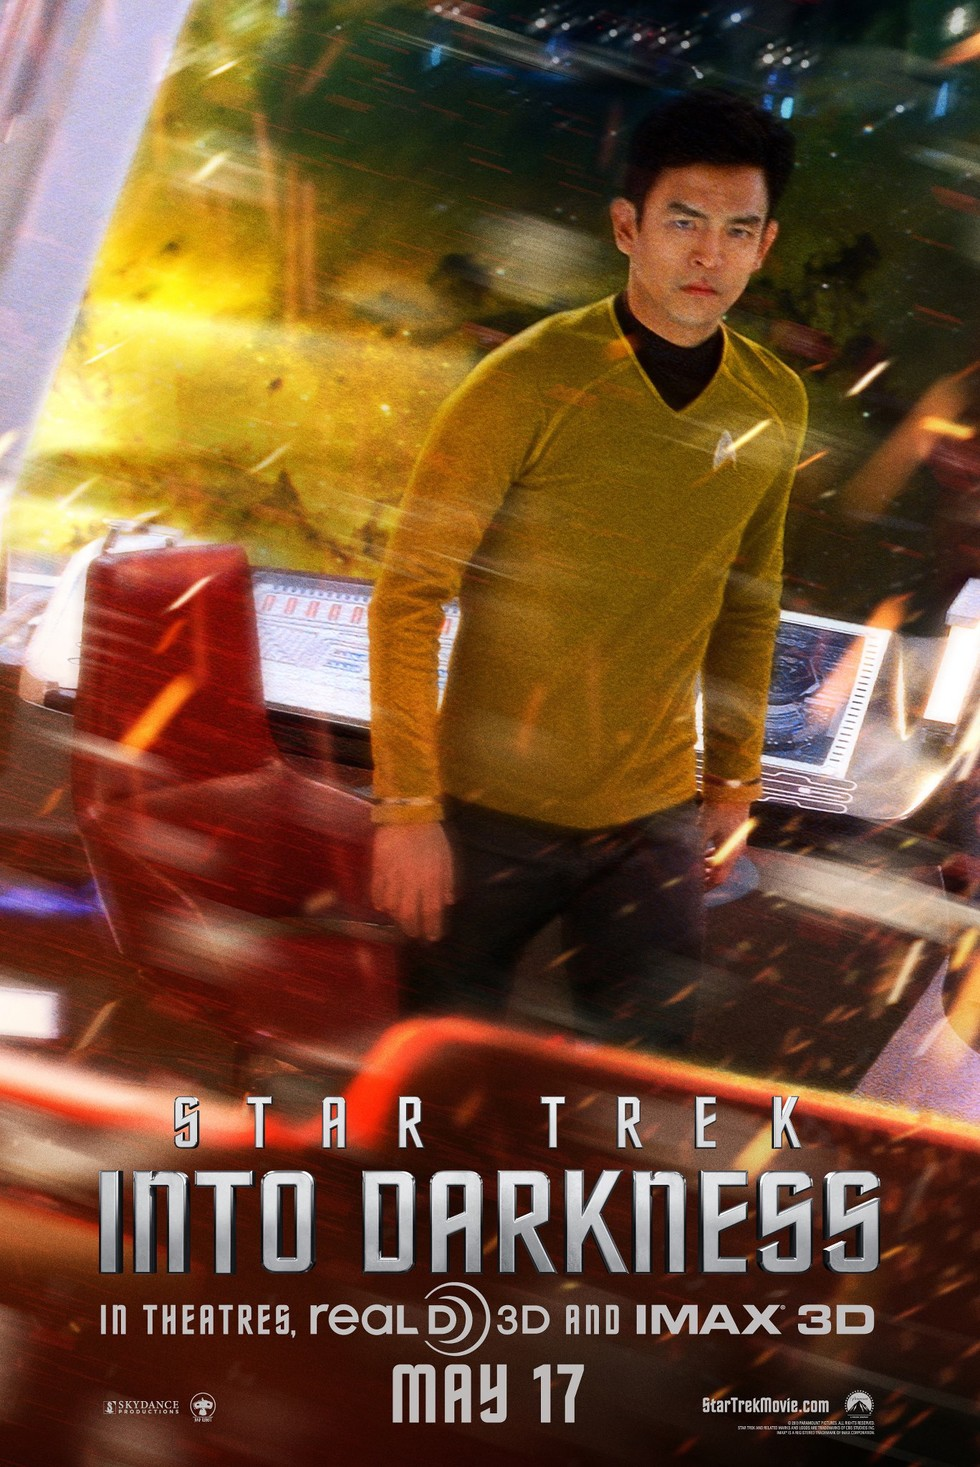 Star Trek Into Darkness - Movie Poster #8 (Large)